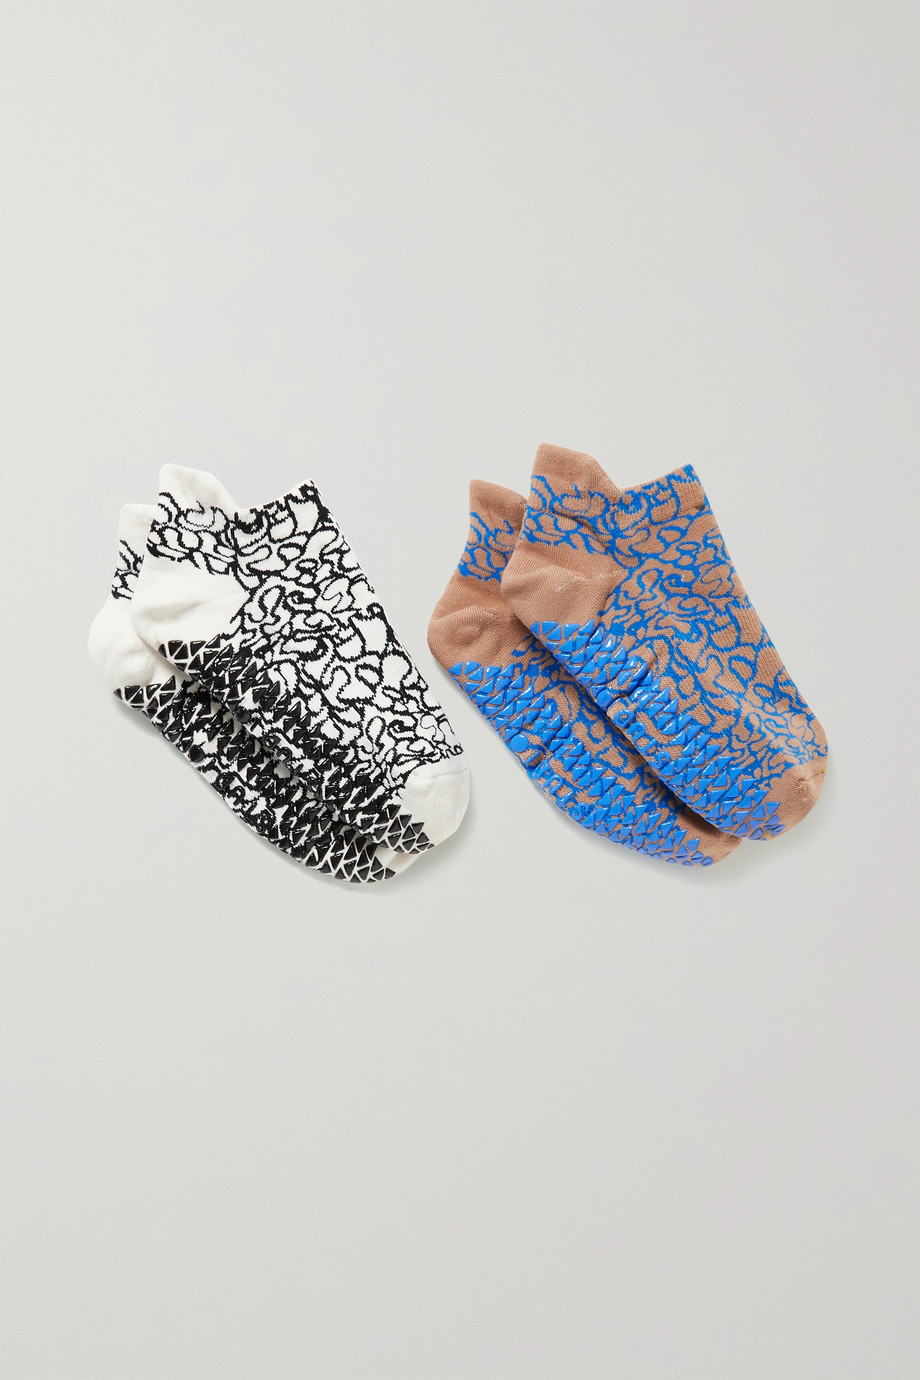 POINTE STUDIO Fashion Studio set of two printed cotton-blend socks